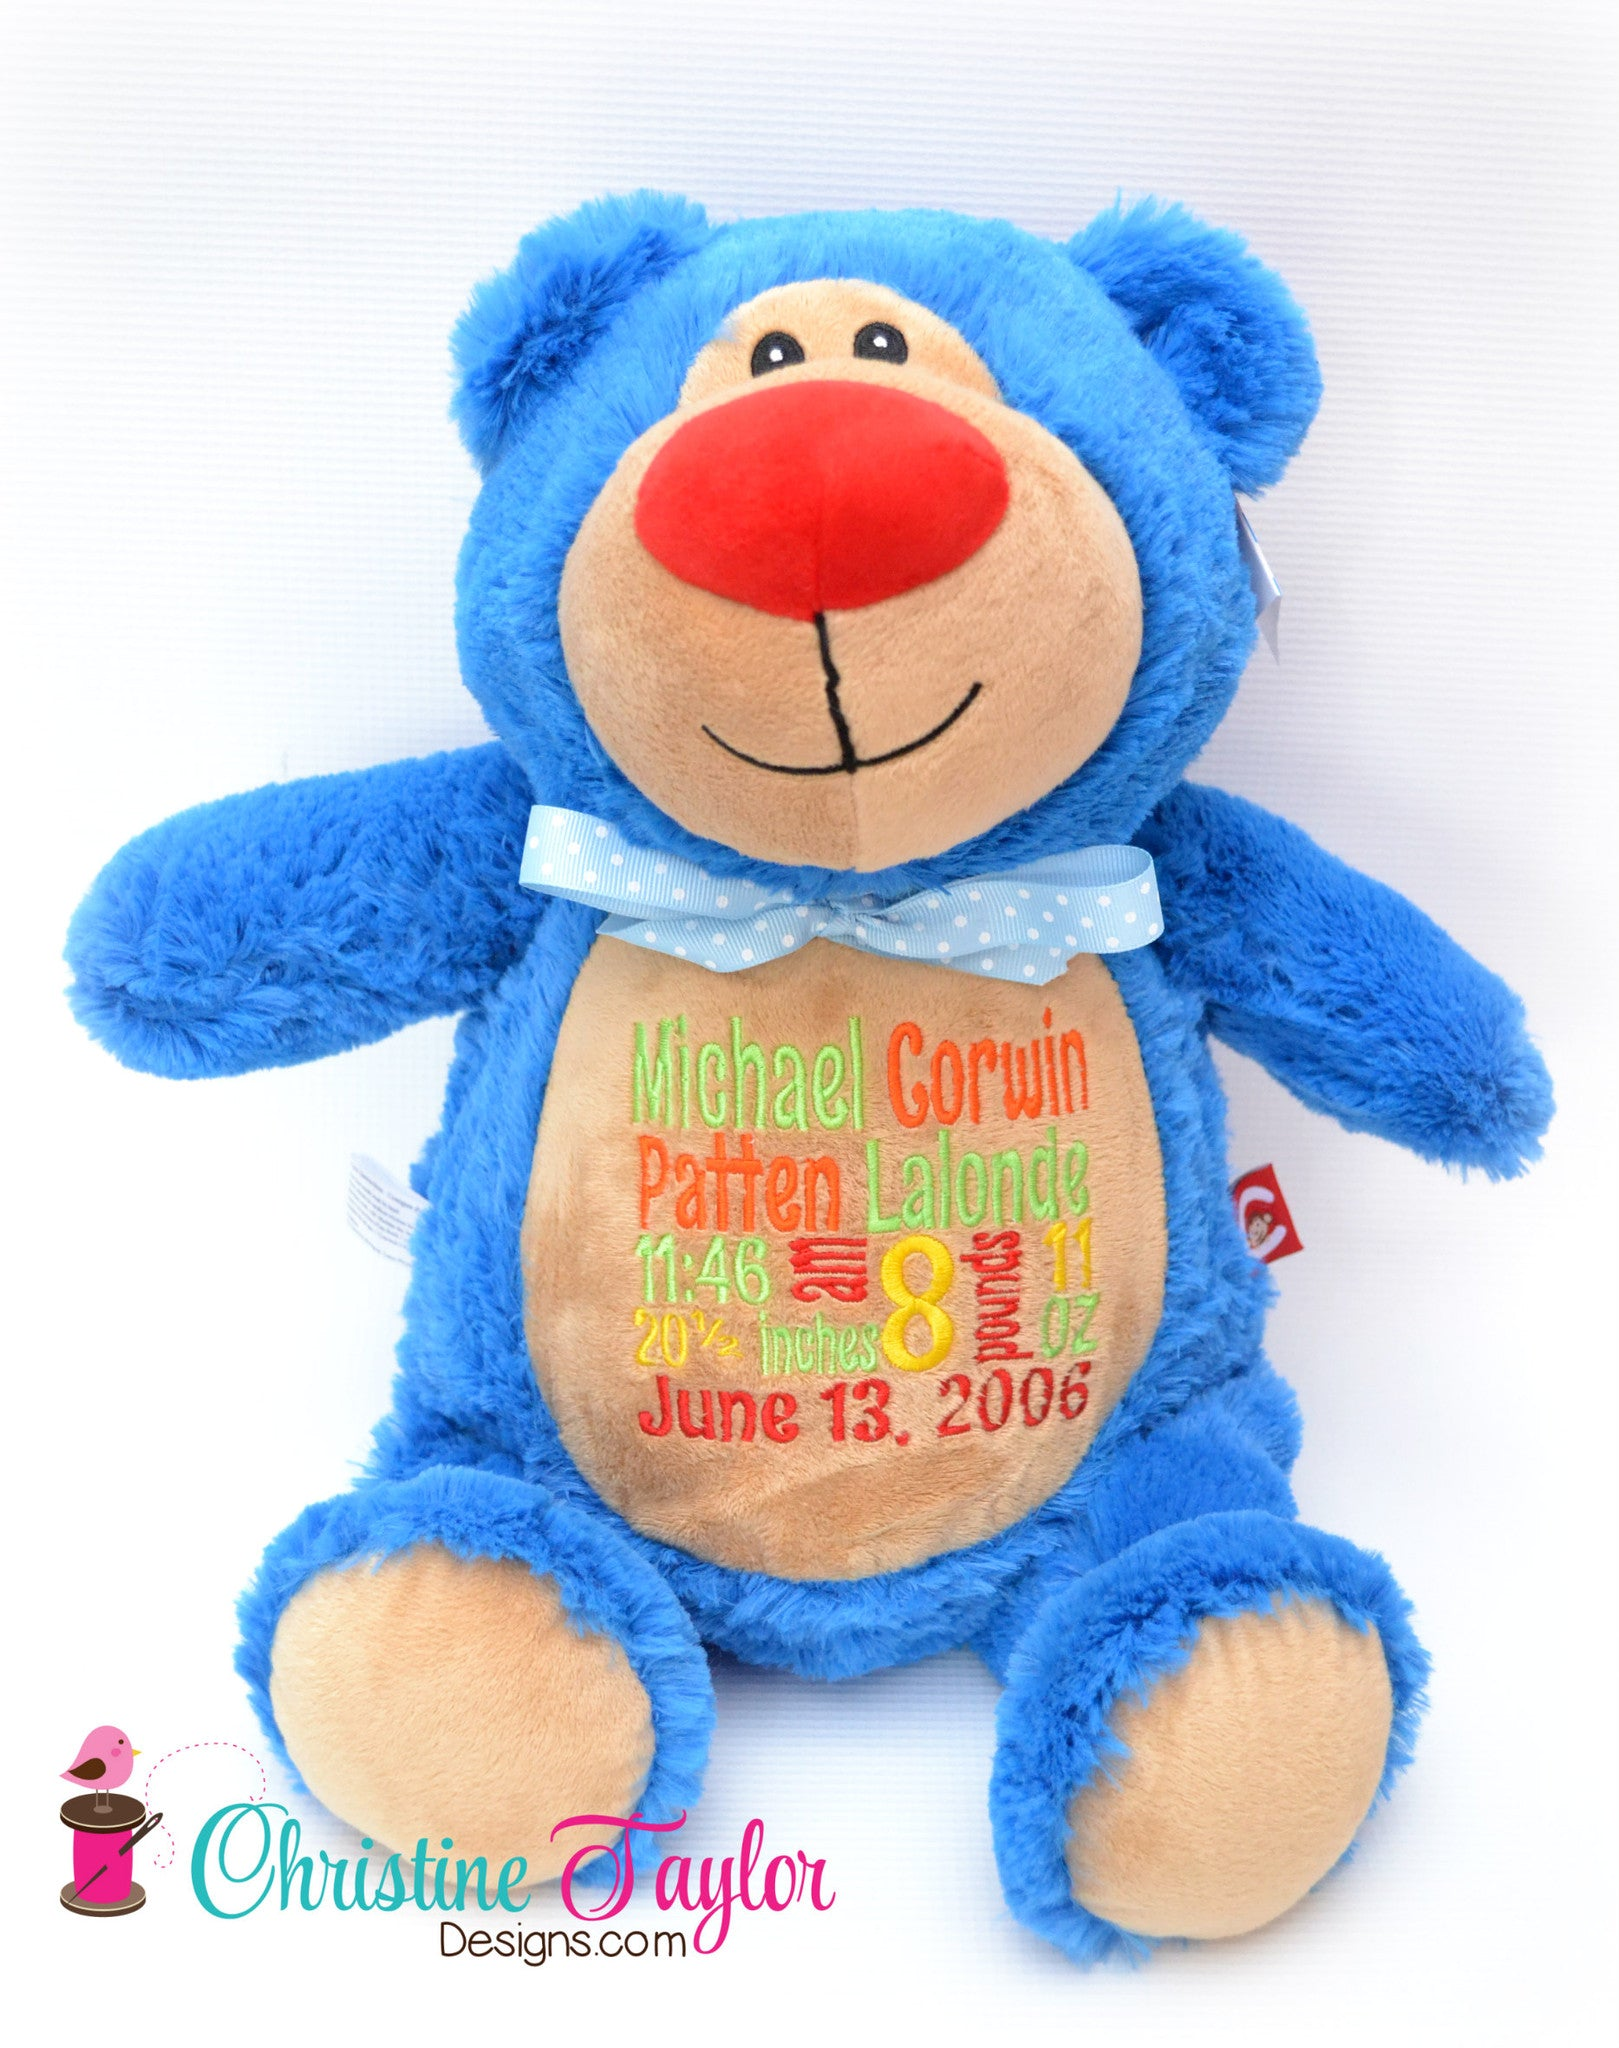 Turquoise Bear - Christine Taylor Designs